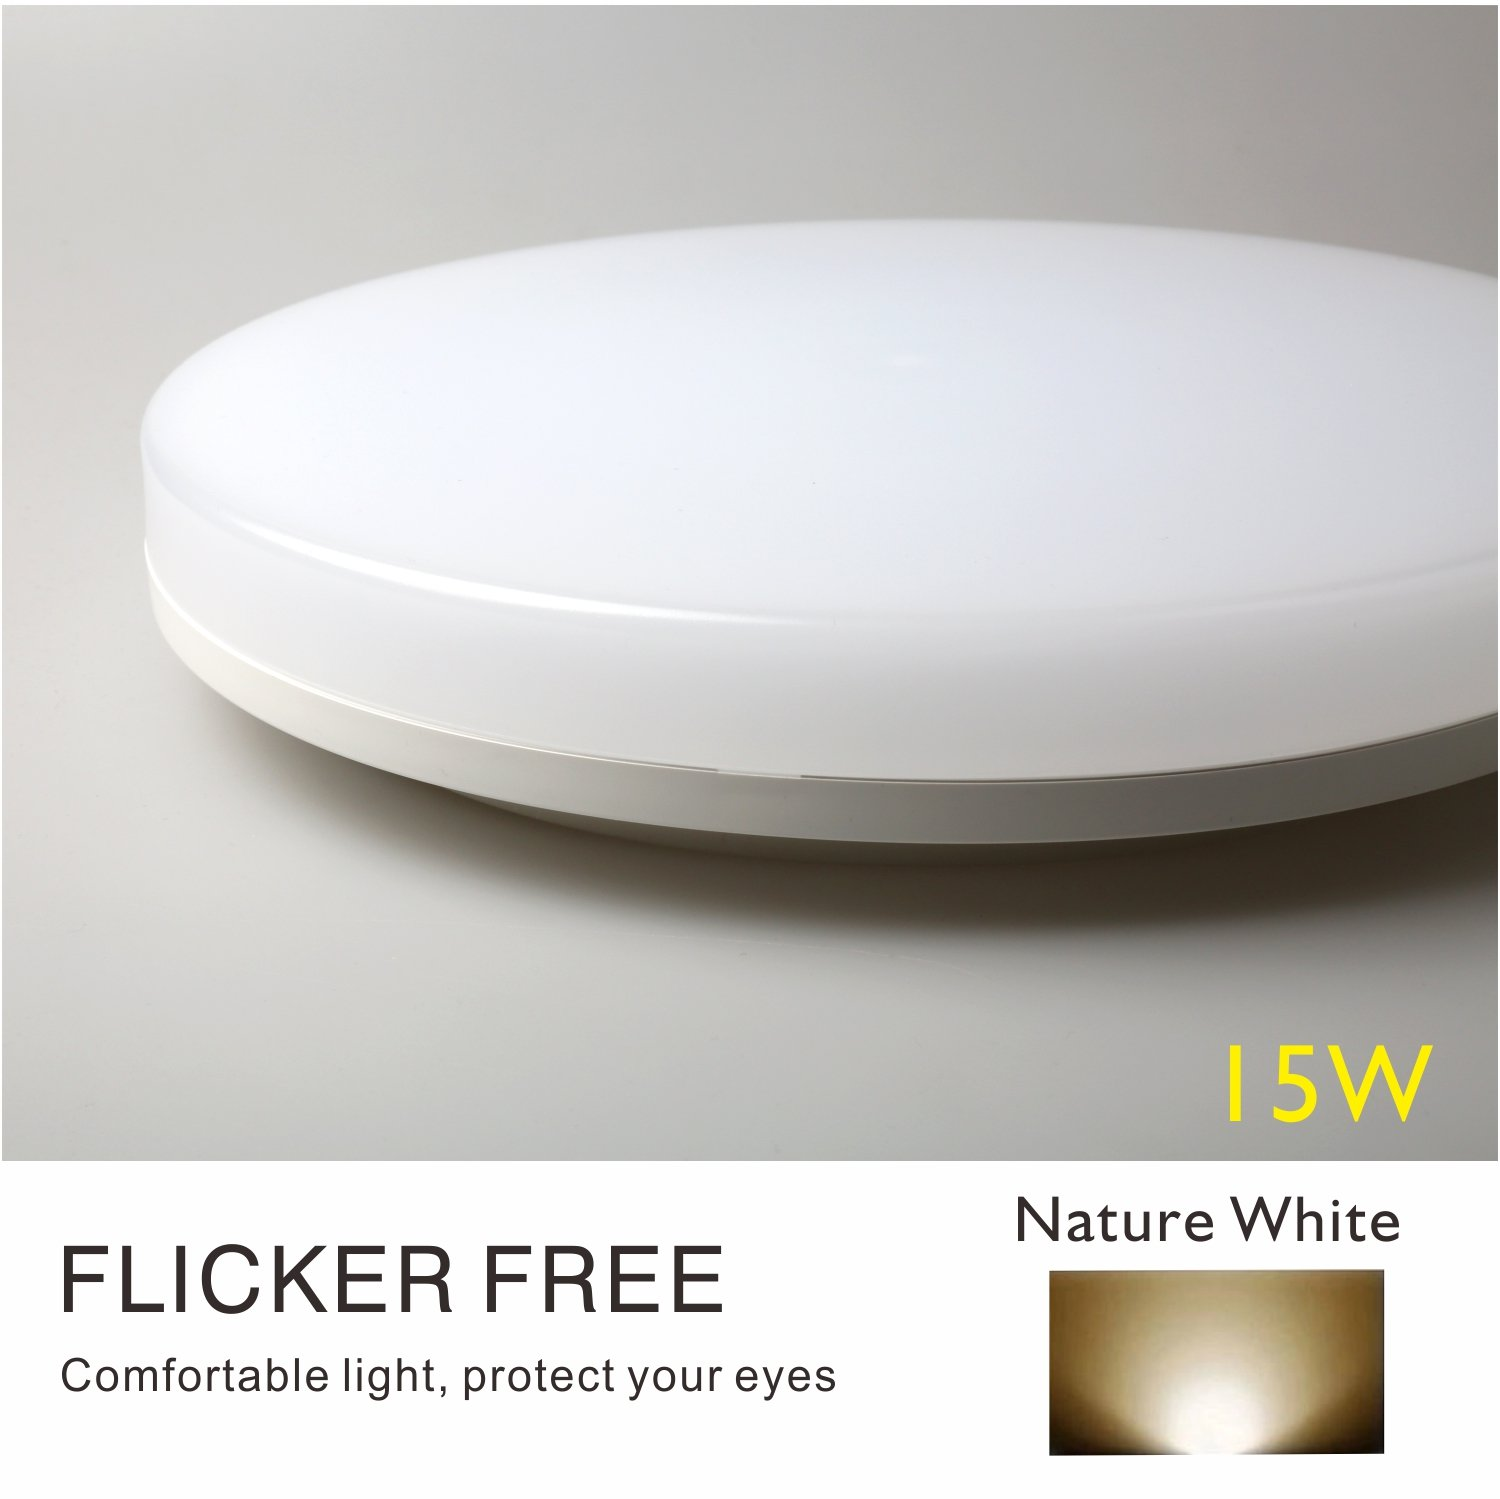 ClayLight LED Ceiling Light Bulkhead 18W 1500LM Warm White(3000K) IP44 Moisture-Proof for for Bathroom, Kitchen Delivery from UK Luccalightcoltd